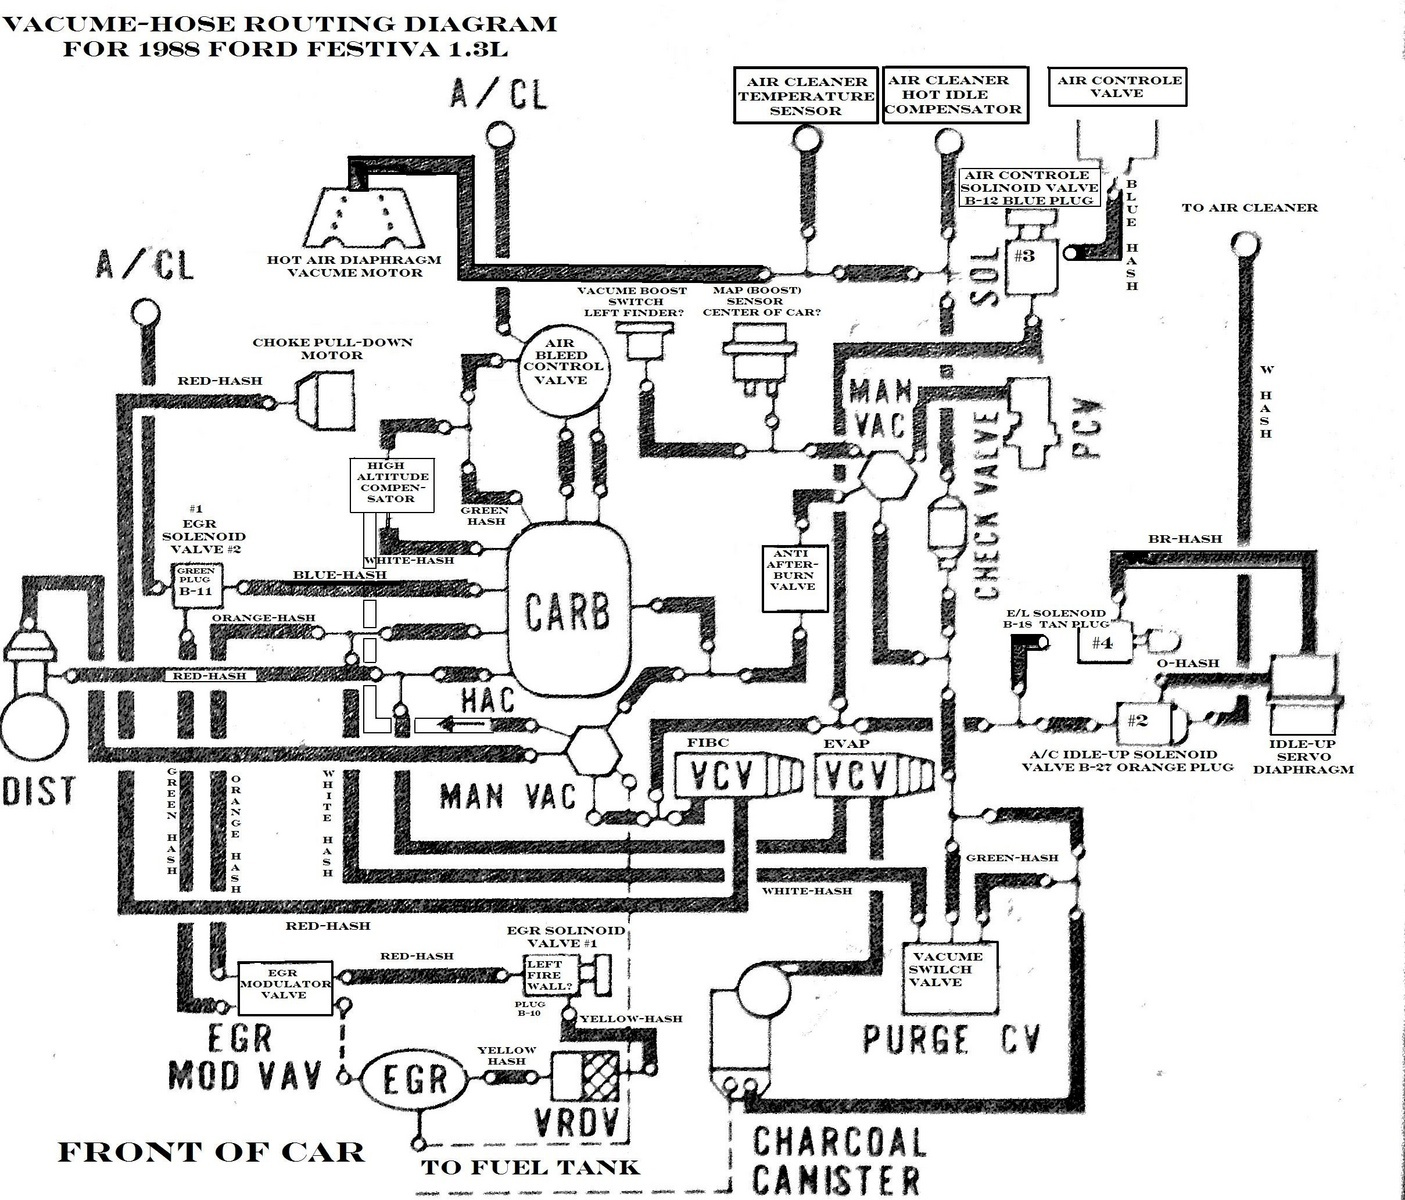 1990 ford festiva wiring diagram wiring libraryford festiva questions getting better fuel mileage cargurus 1980 ford festiva 1990 ford festiva wiring diagram